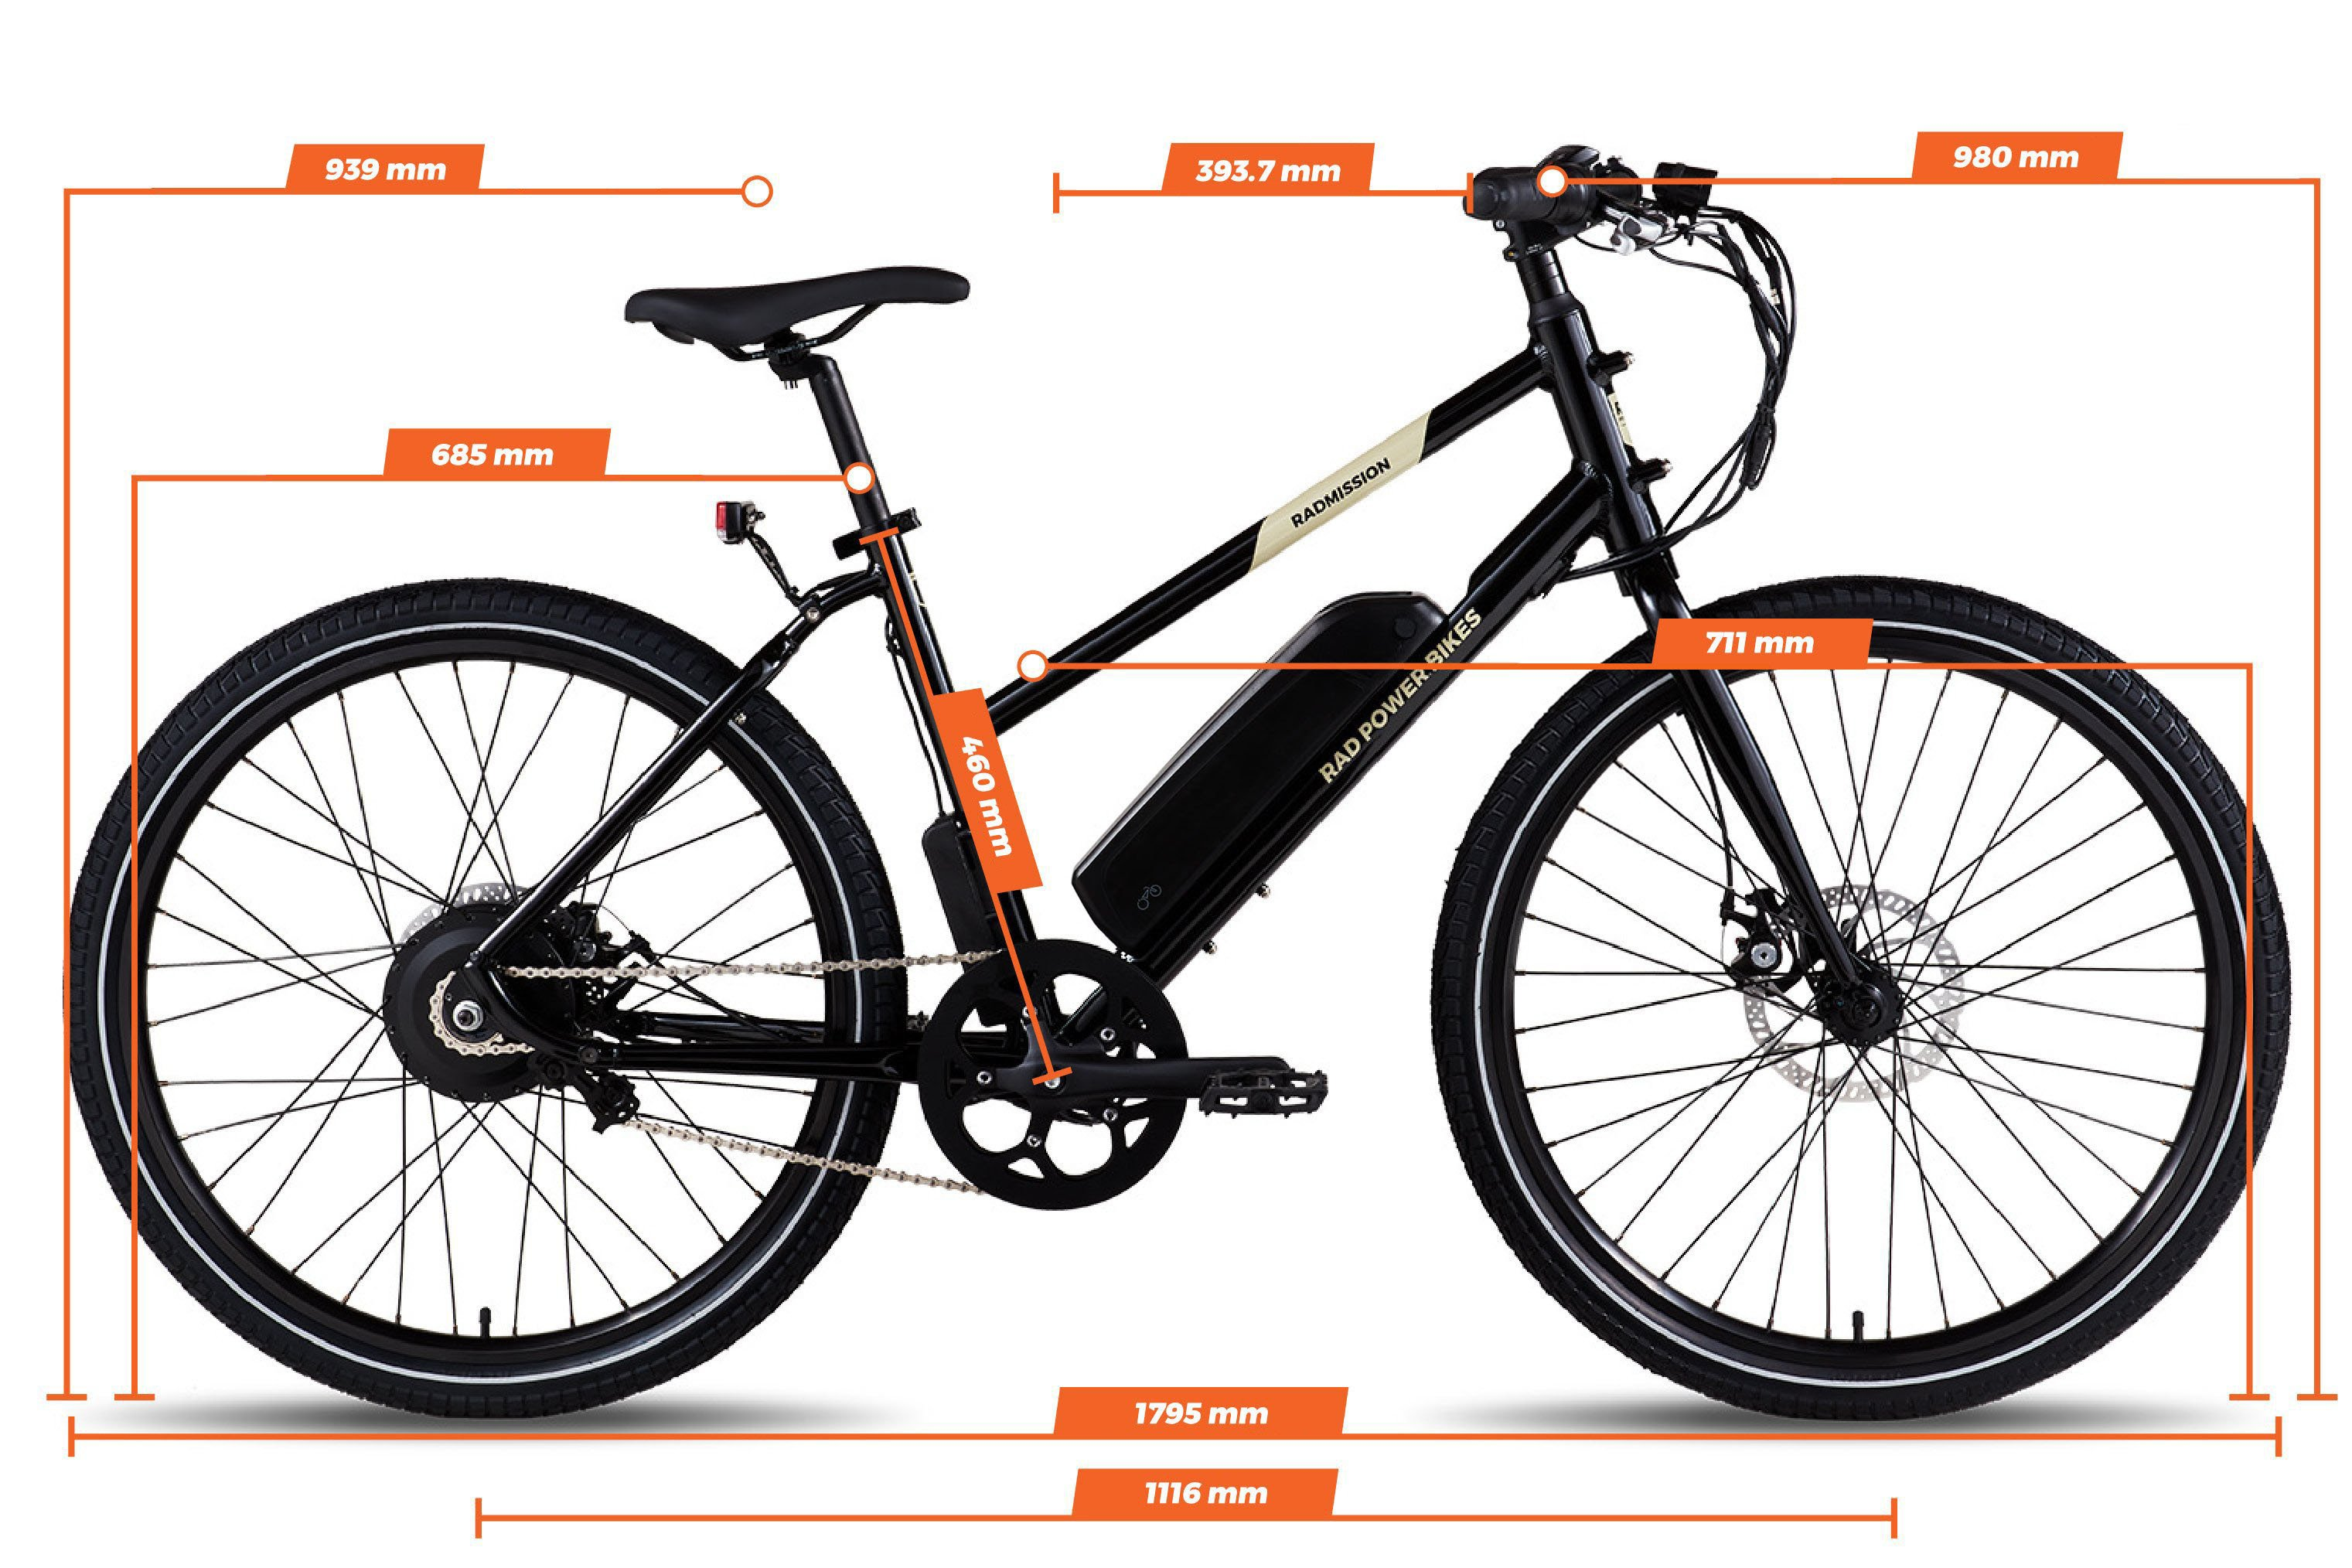 Geometry chart for the RadMission Electric Metro Bike